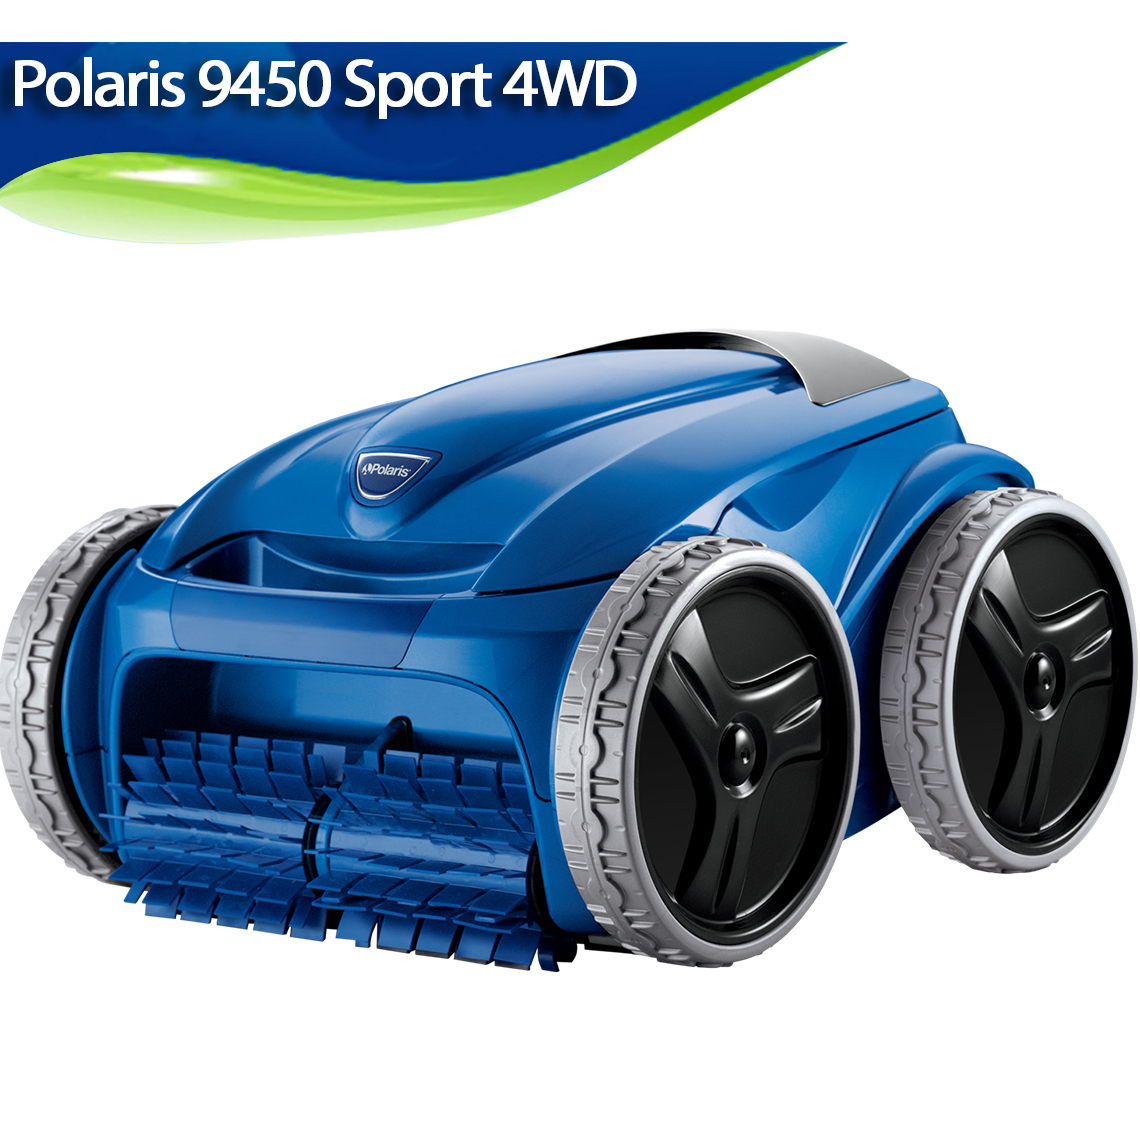 Polaris 9450 Sport 4wd Review Best Robotic Pool Cleaners